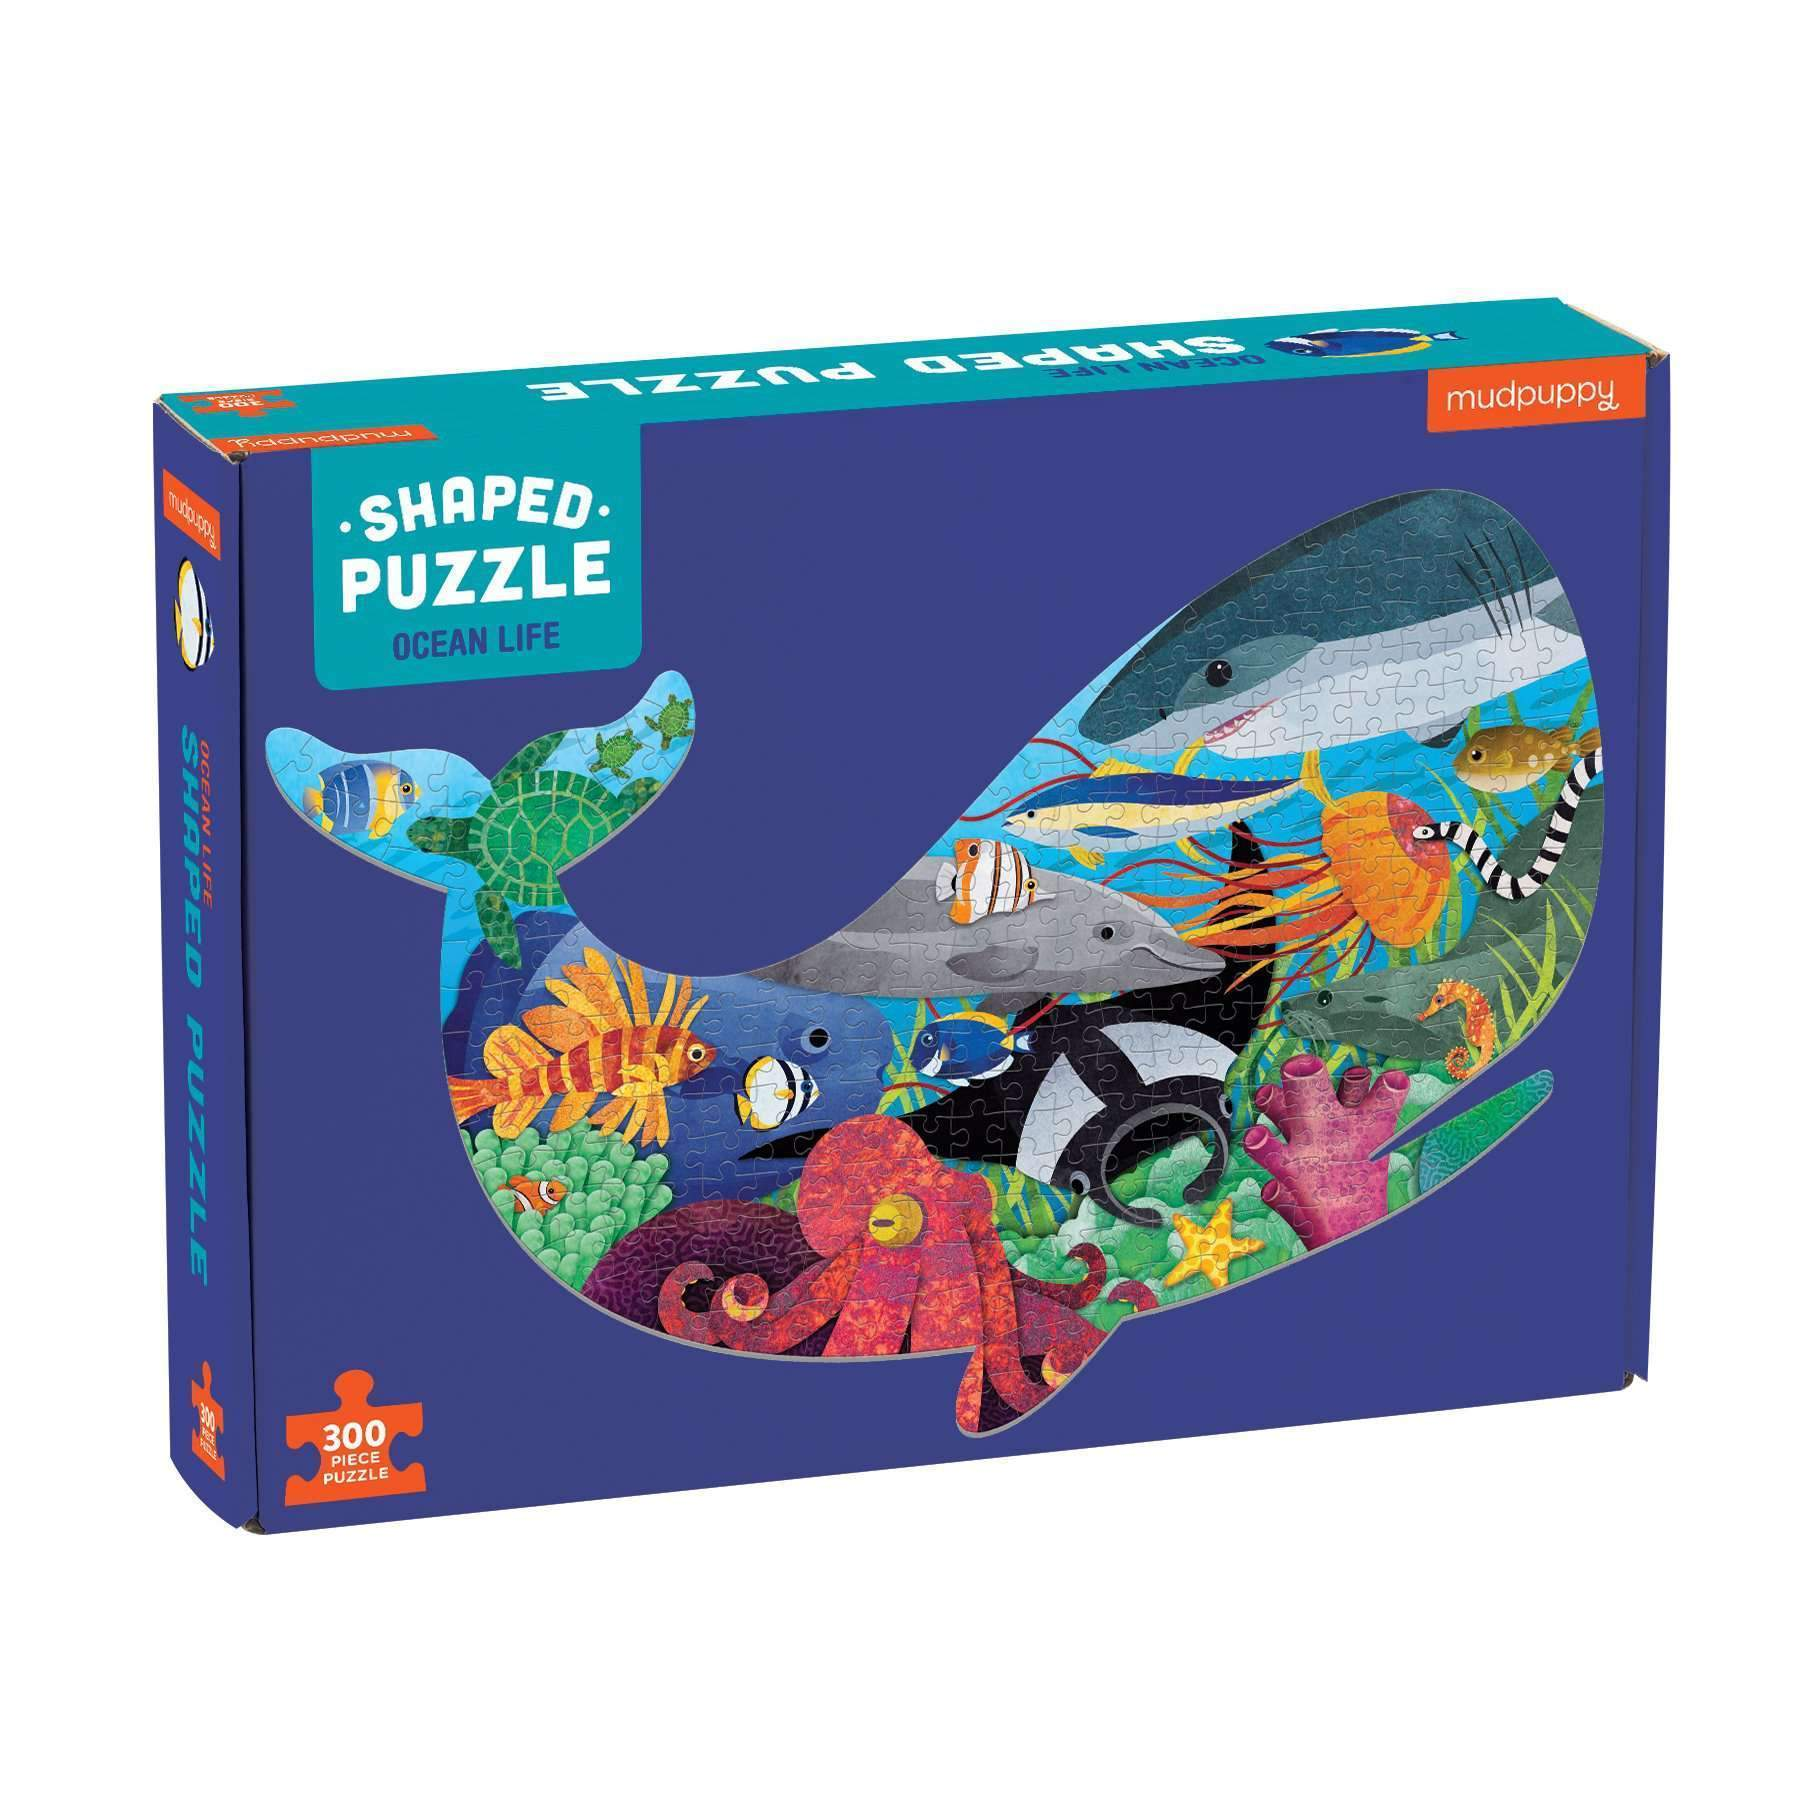 Ocean Life 300 Piece Shaped Scene Puzzle 300 piece shaped scene puzzles Mudpuppy